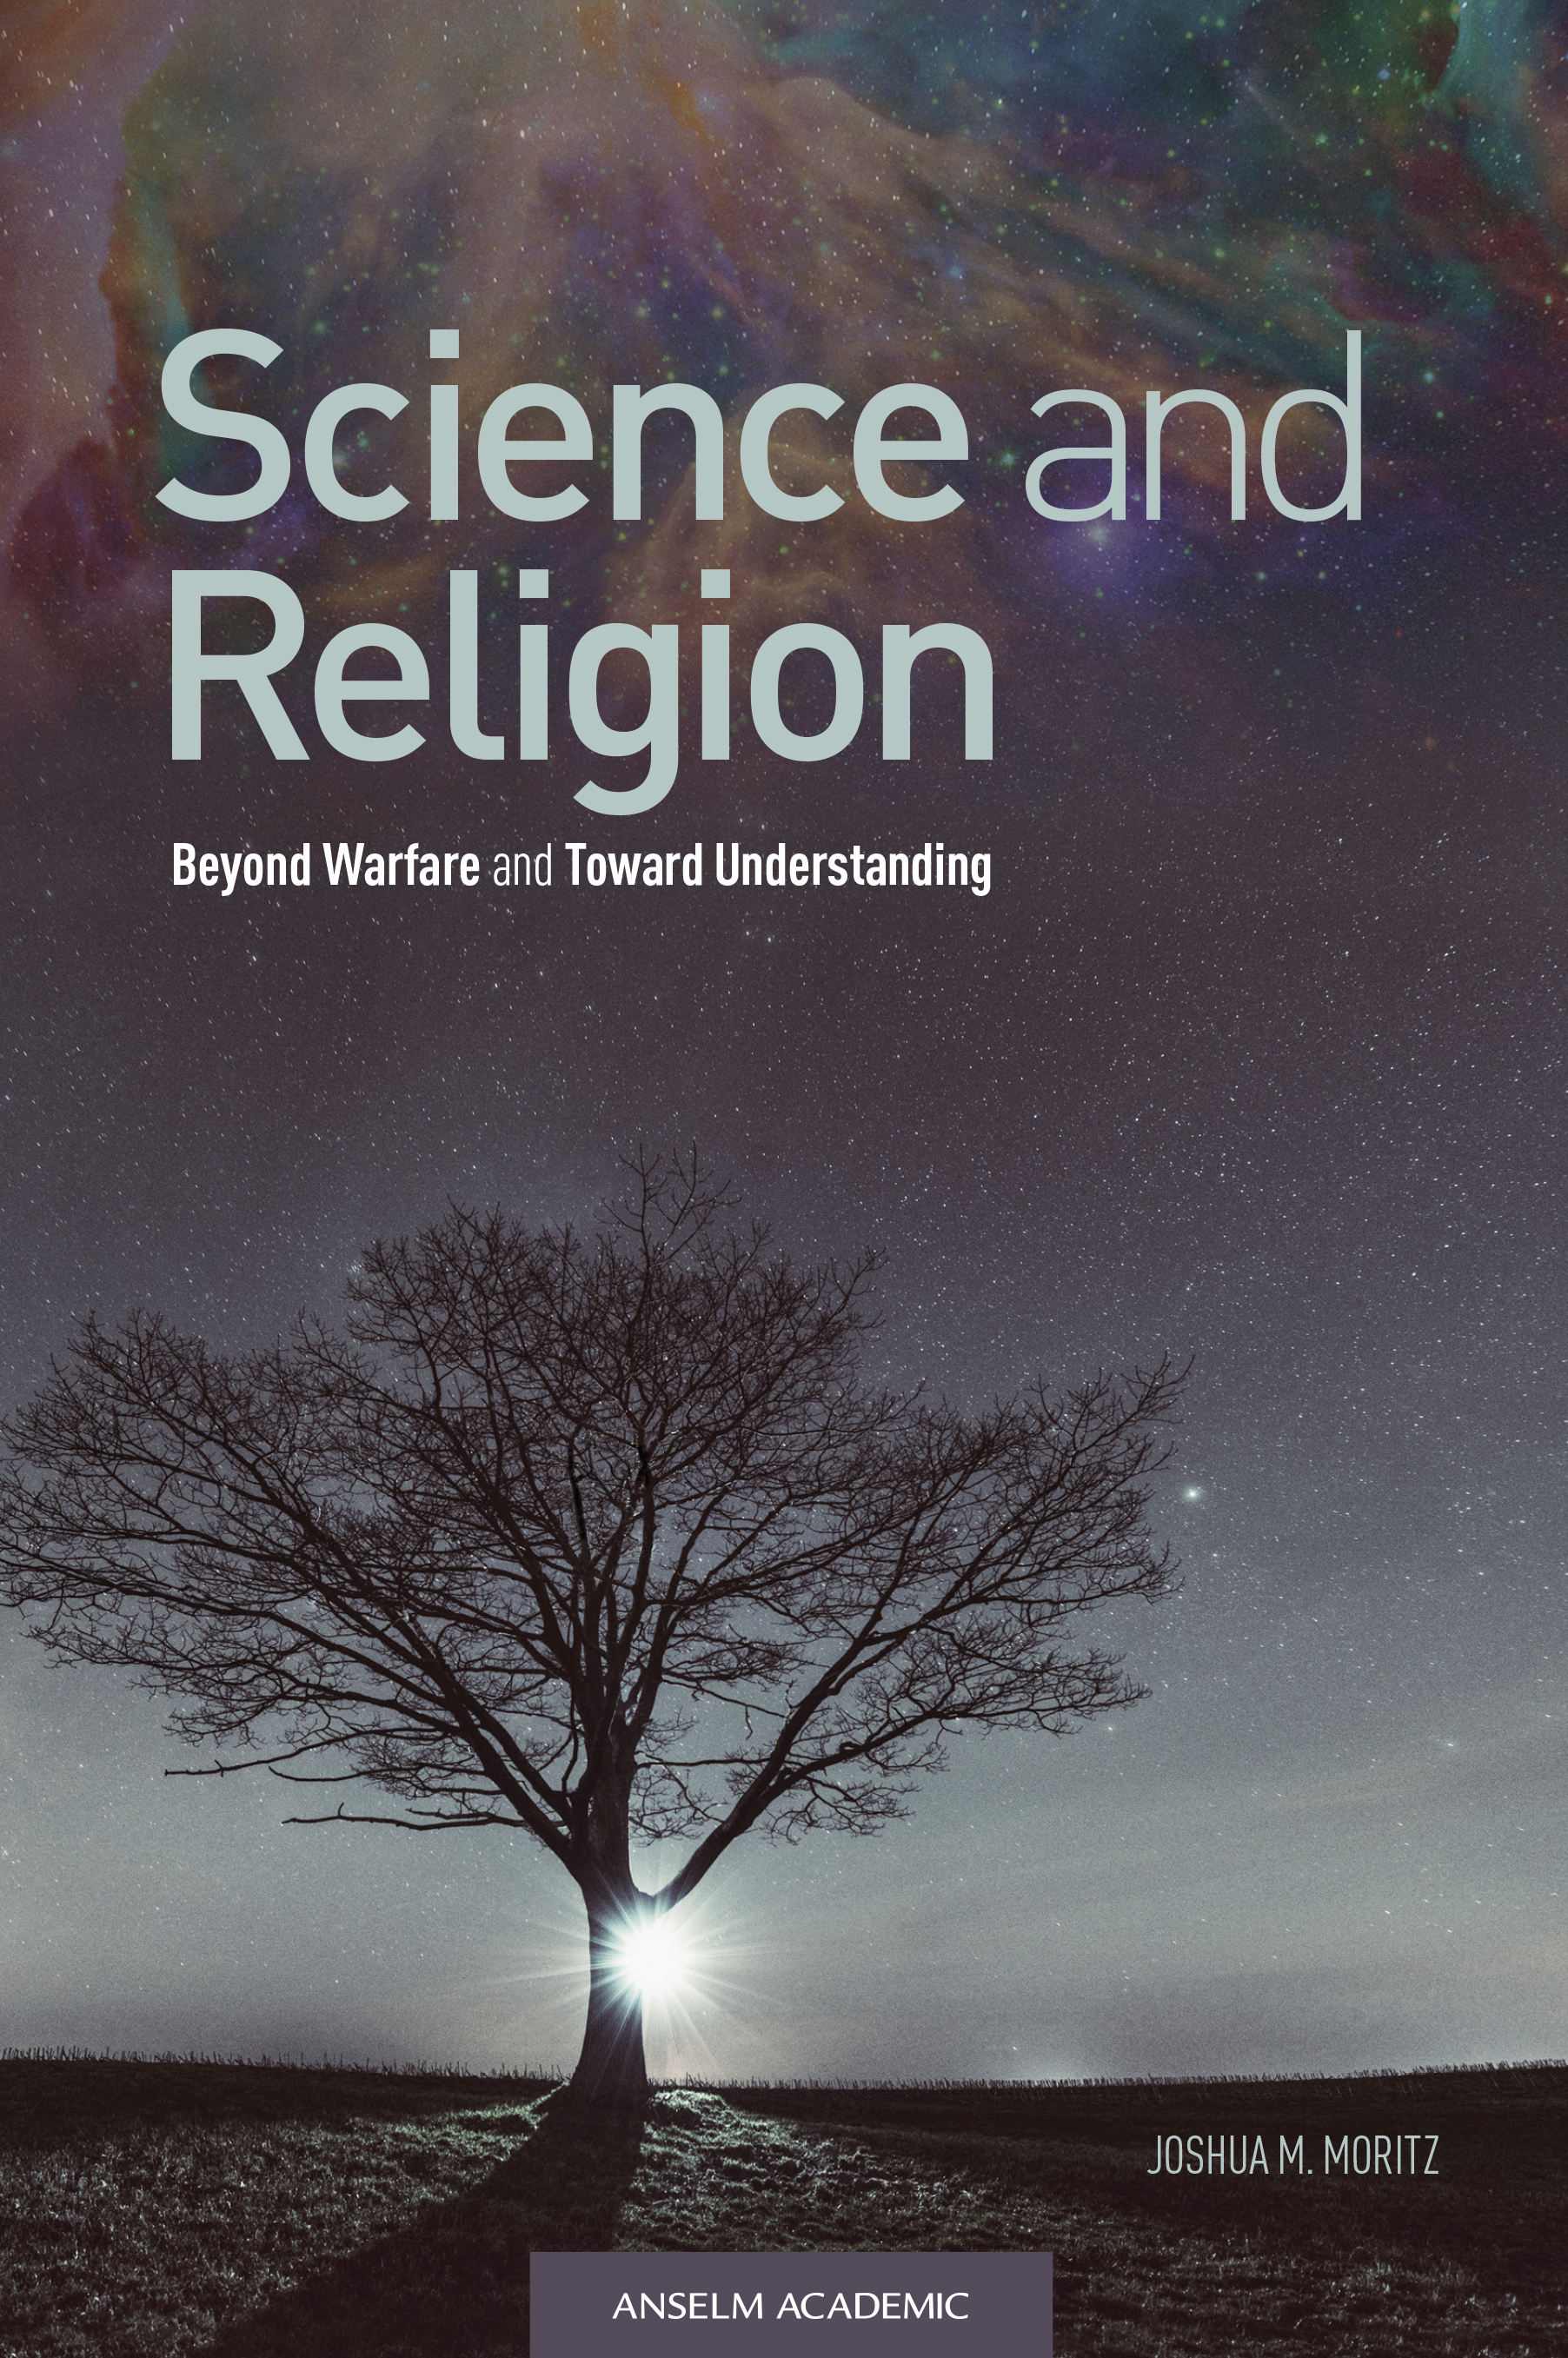 Science and Religion: Beyond Warfare and Toward Understanding